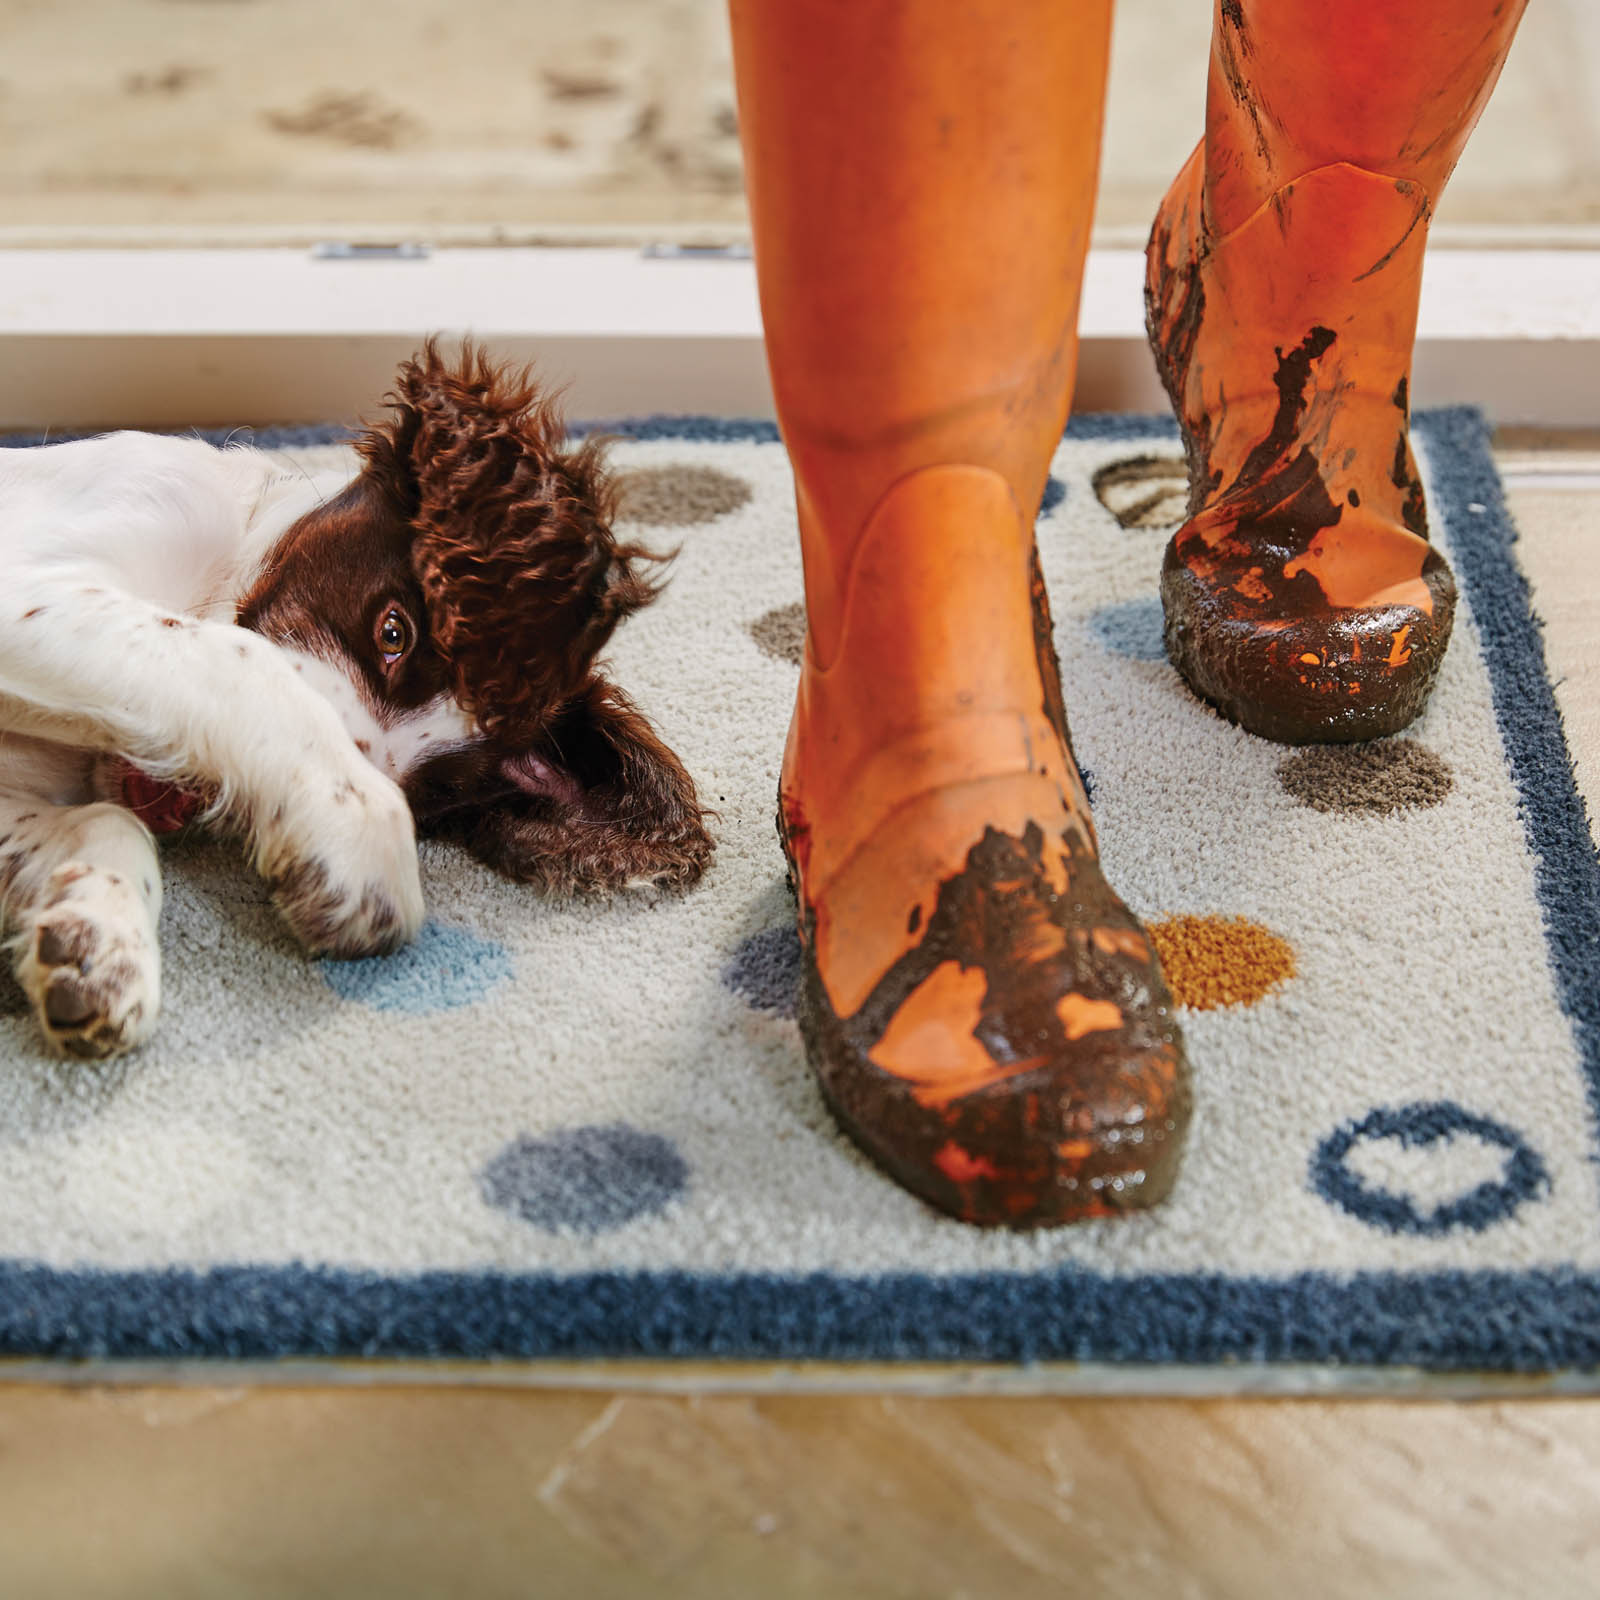 Contemporary Hug Rug Door mats